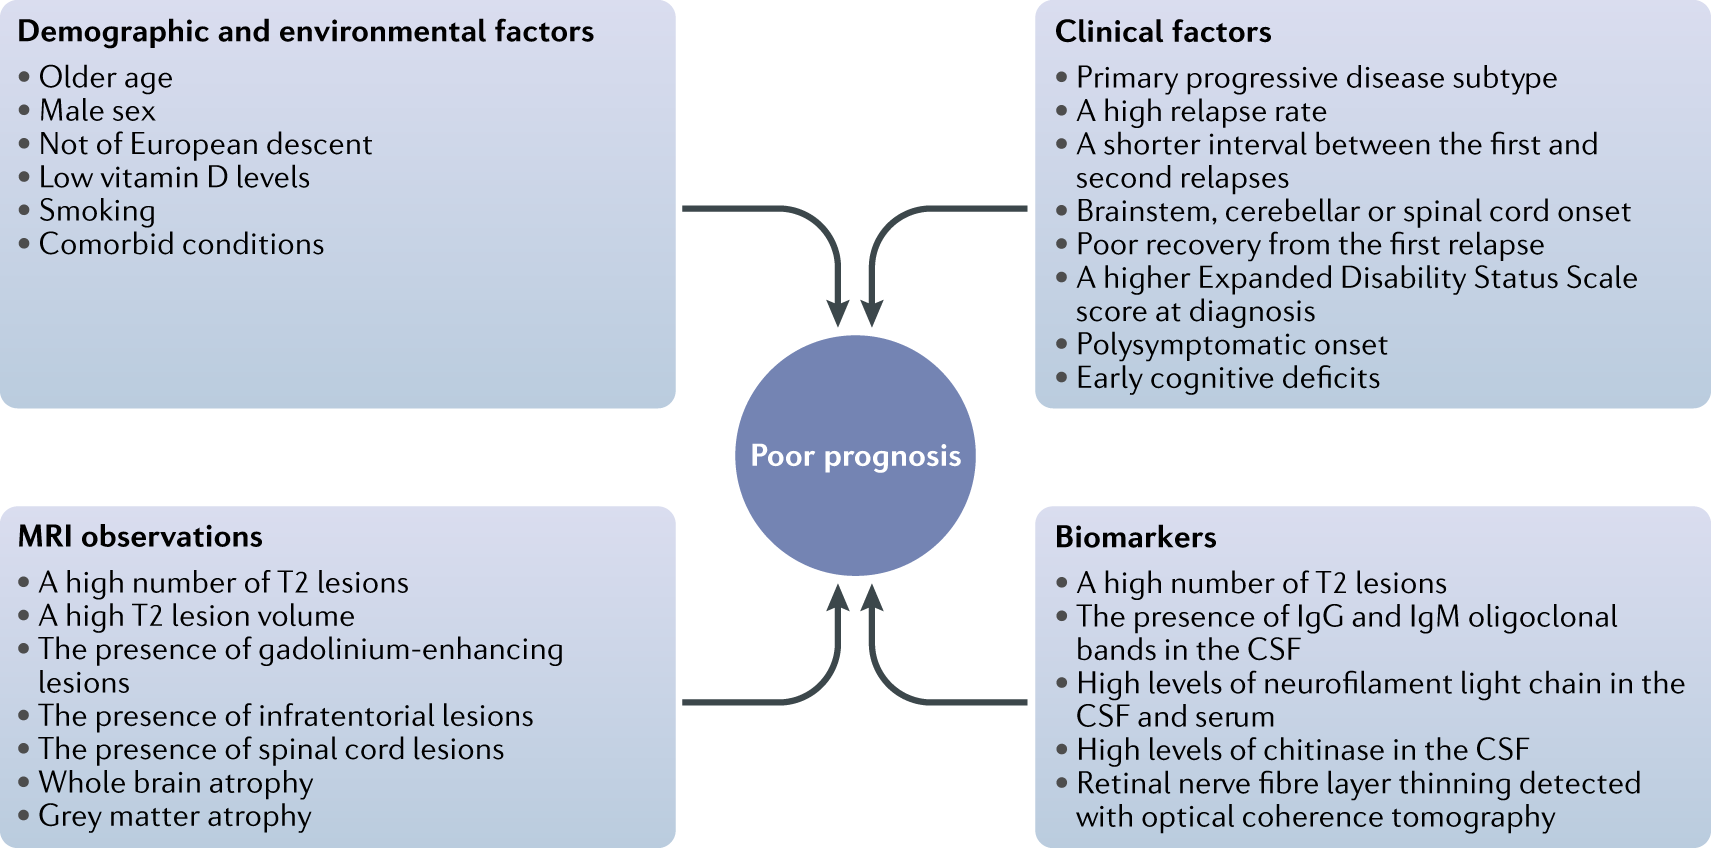 Reaching an evidence-based prognosis for personalized